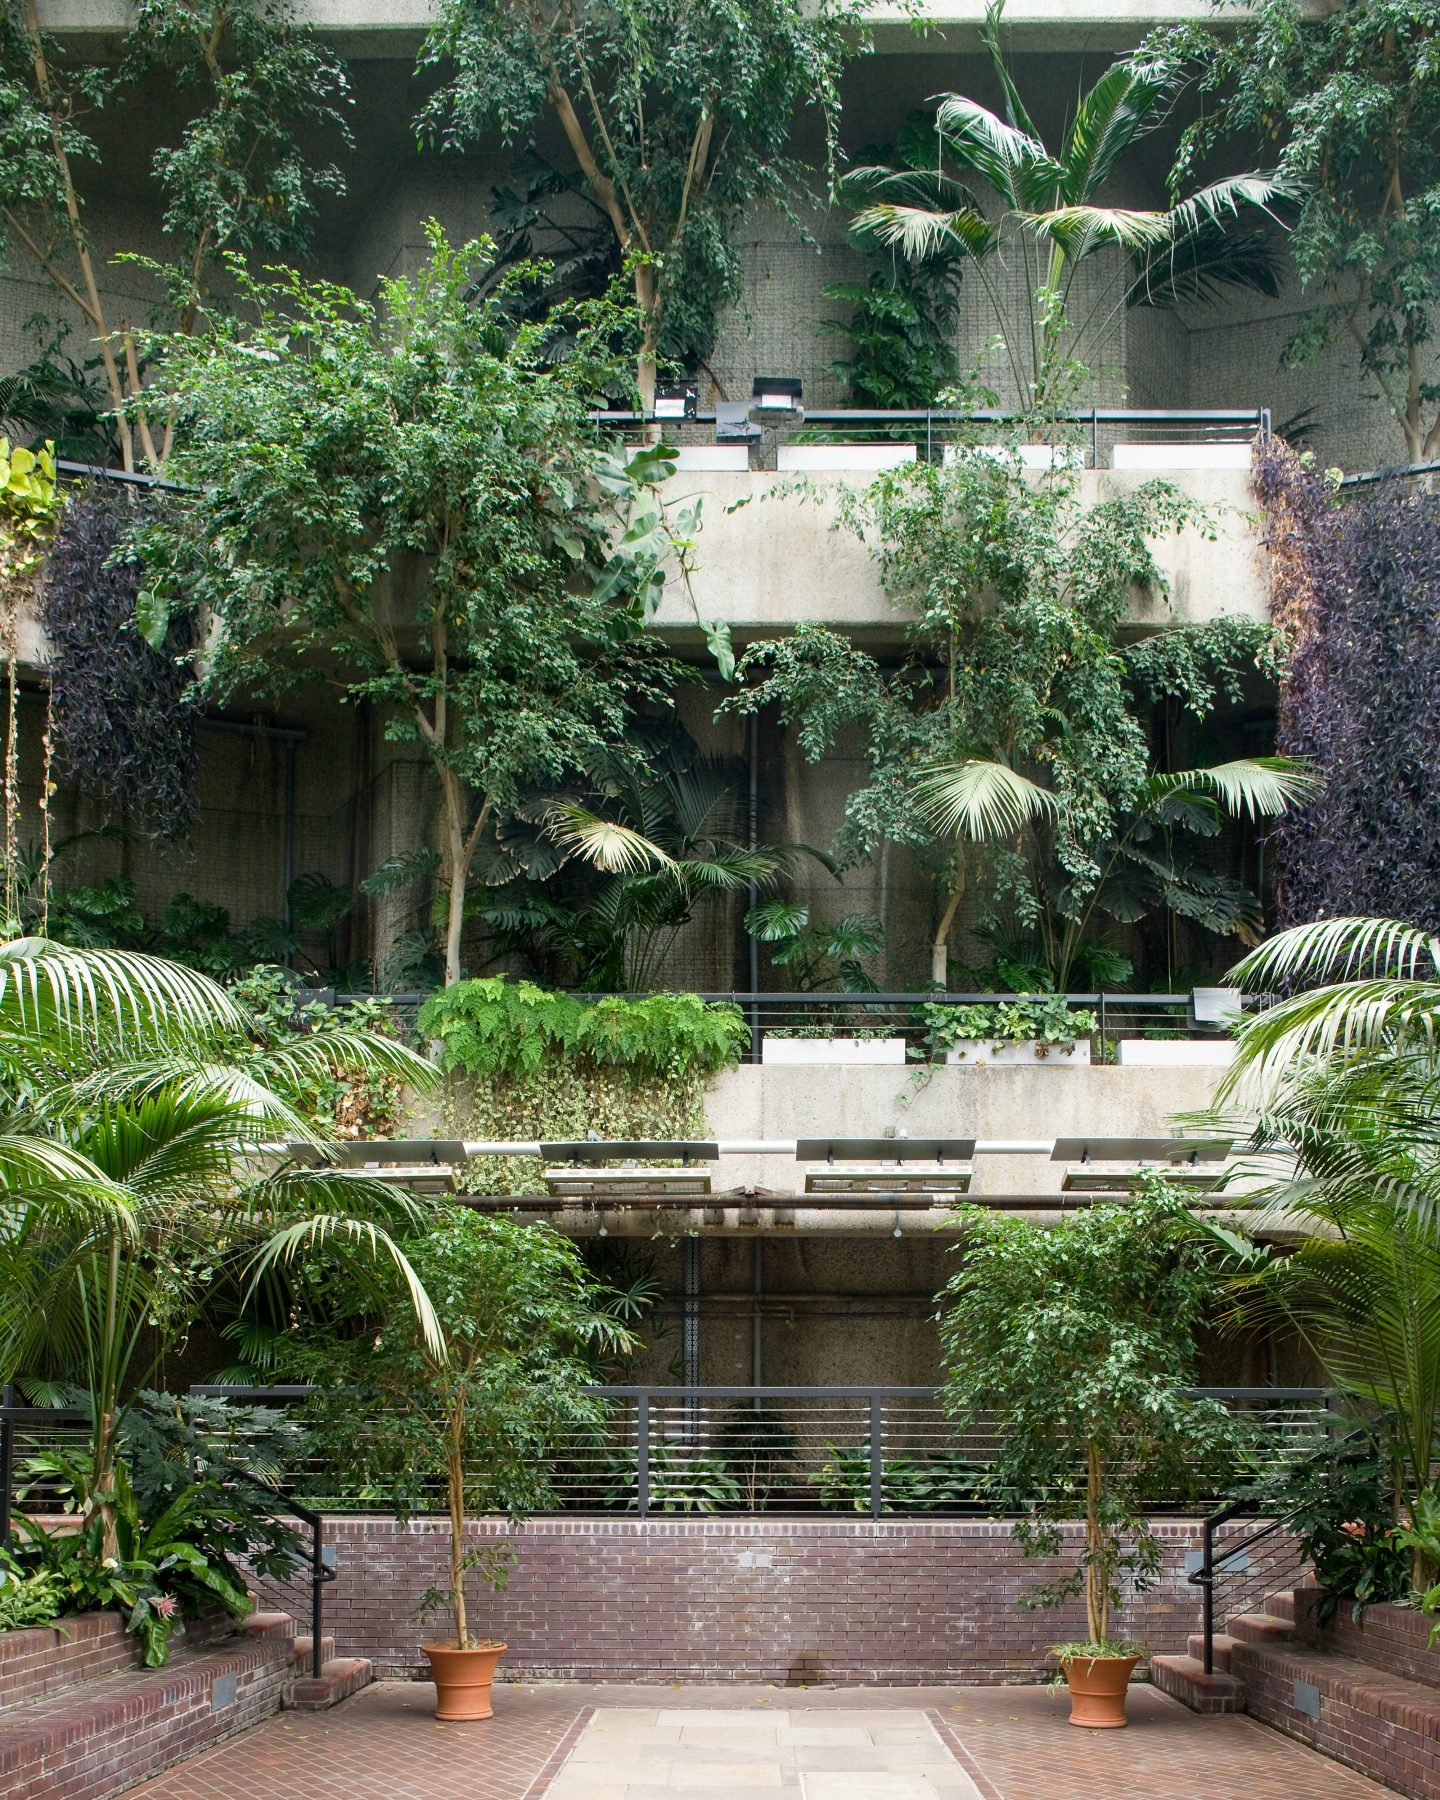 IGNANT-Travel-Luke-Hayes-The-Barbican-Conservatory-013